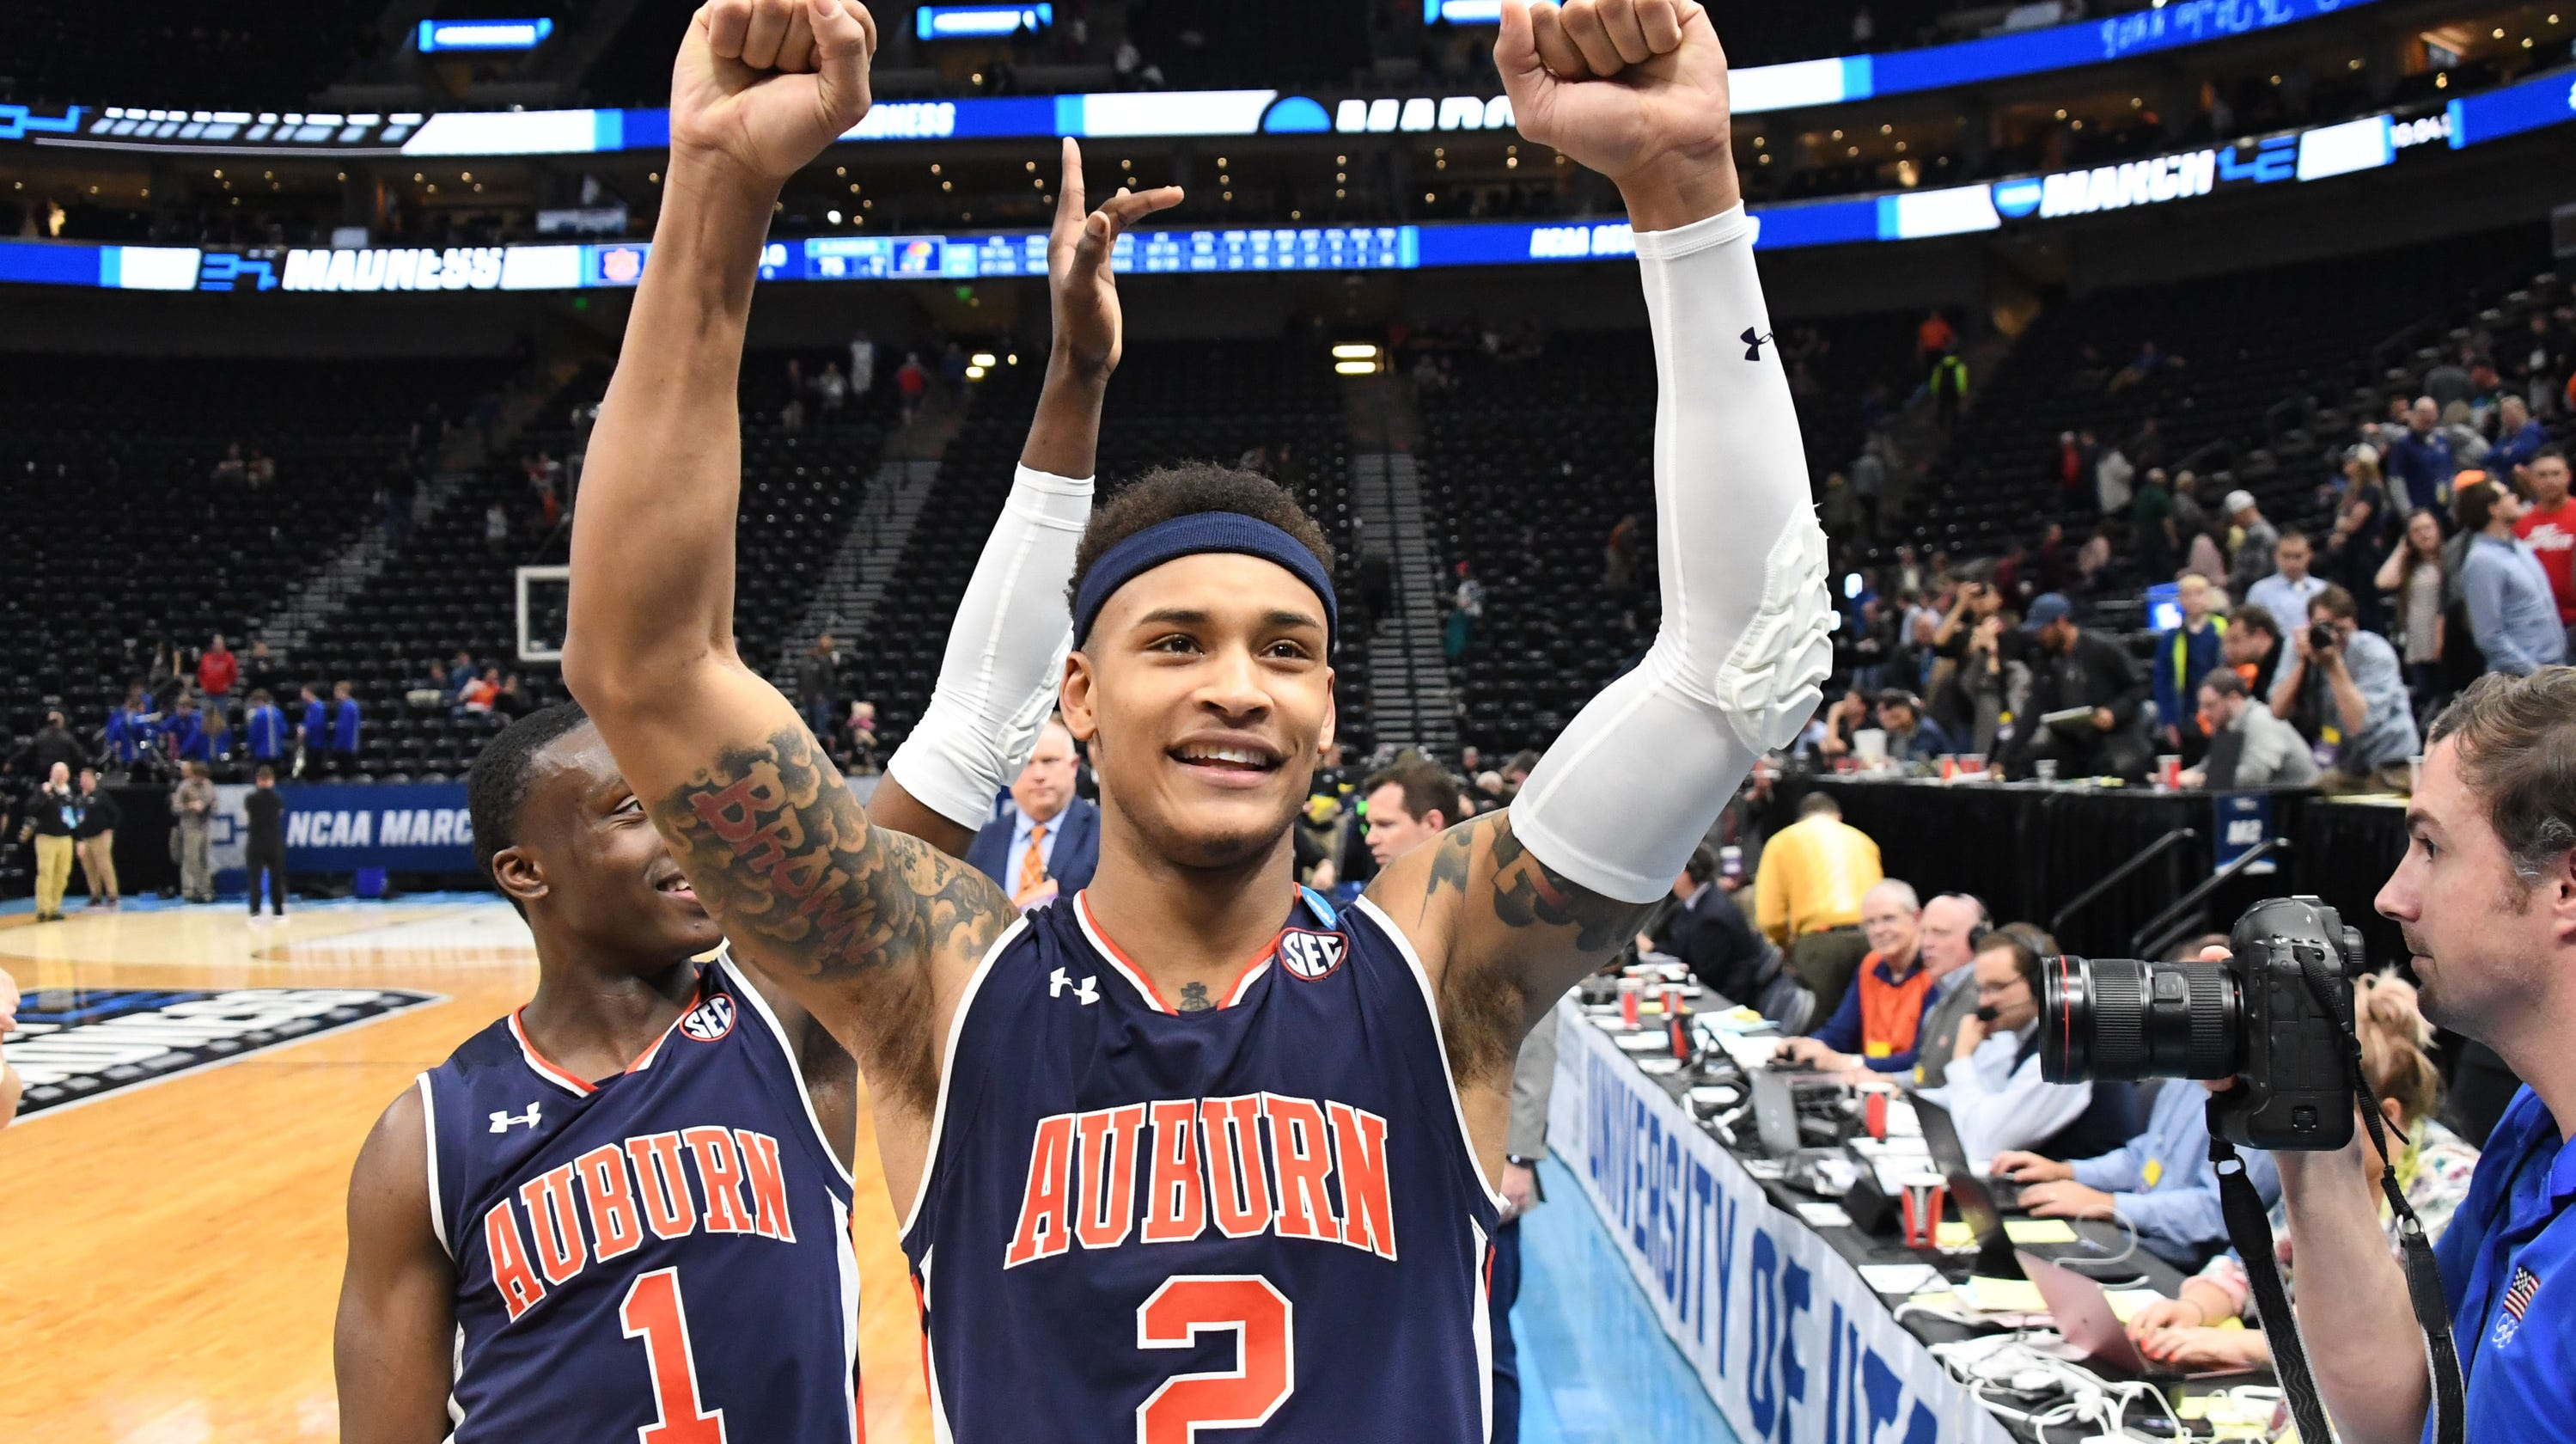 March Madness 2019: How To Watch, Stream UNC Vs. Auburn